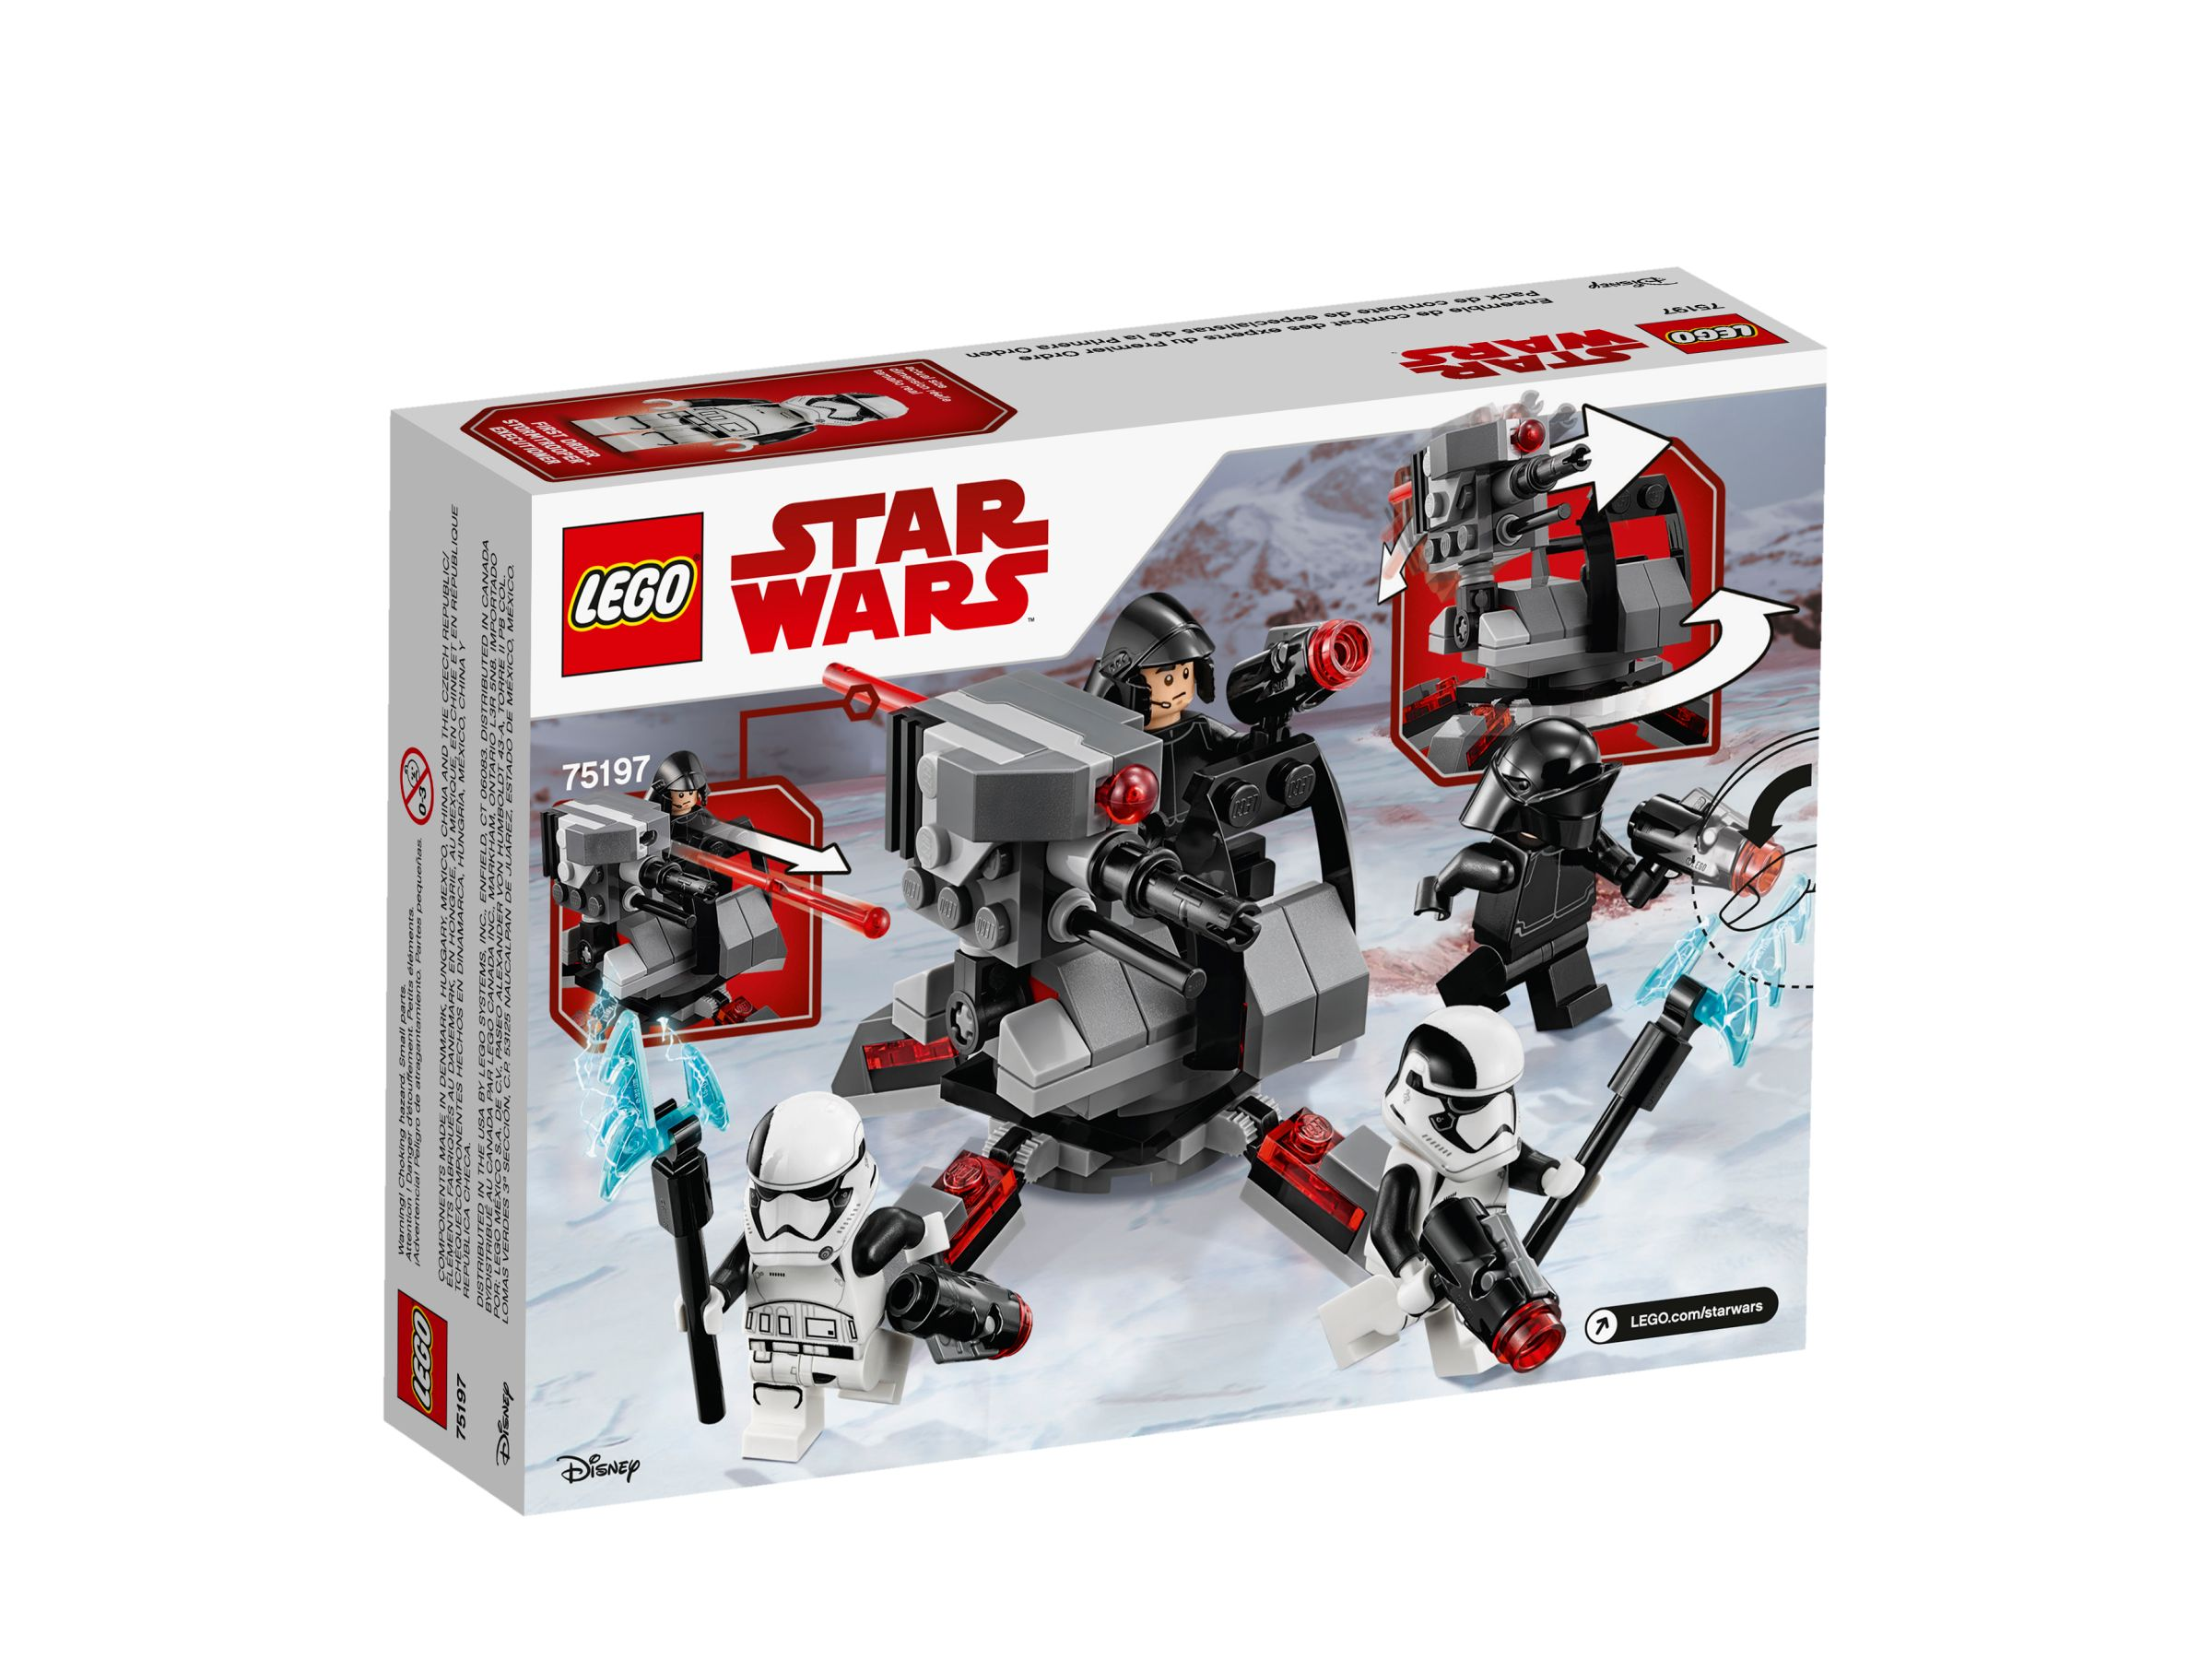 LEGO Star Wars 75197 First Order Specialists Battle Pack LEGO_75197_alt2.jpg